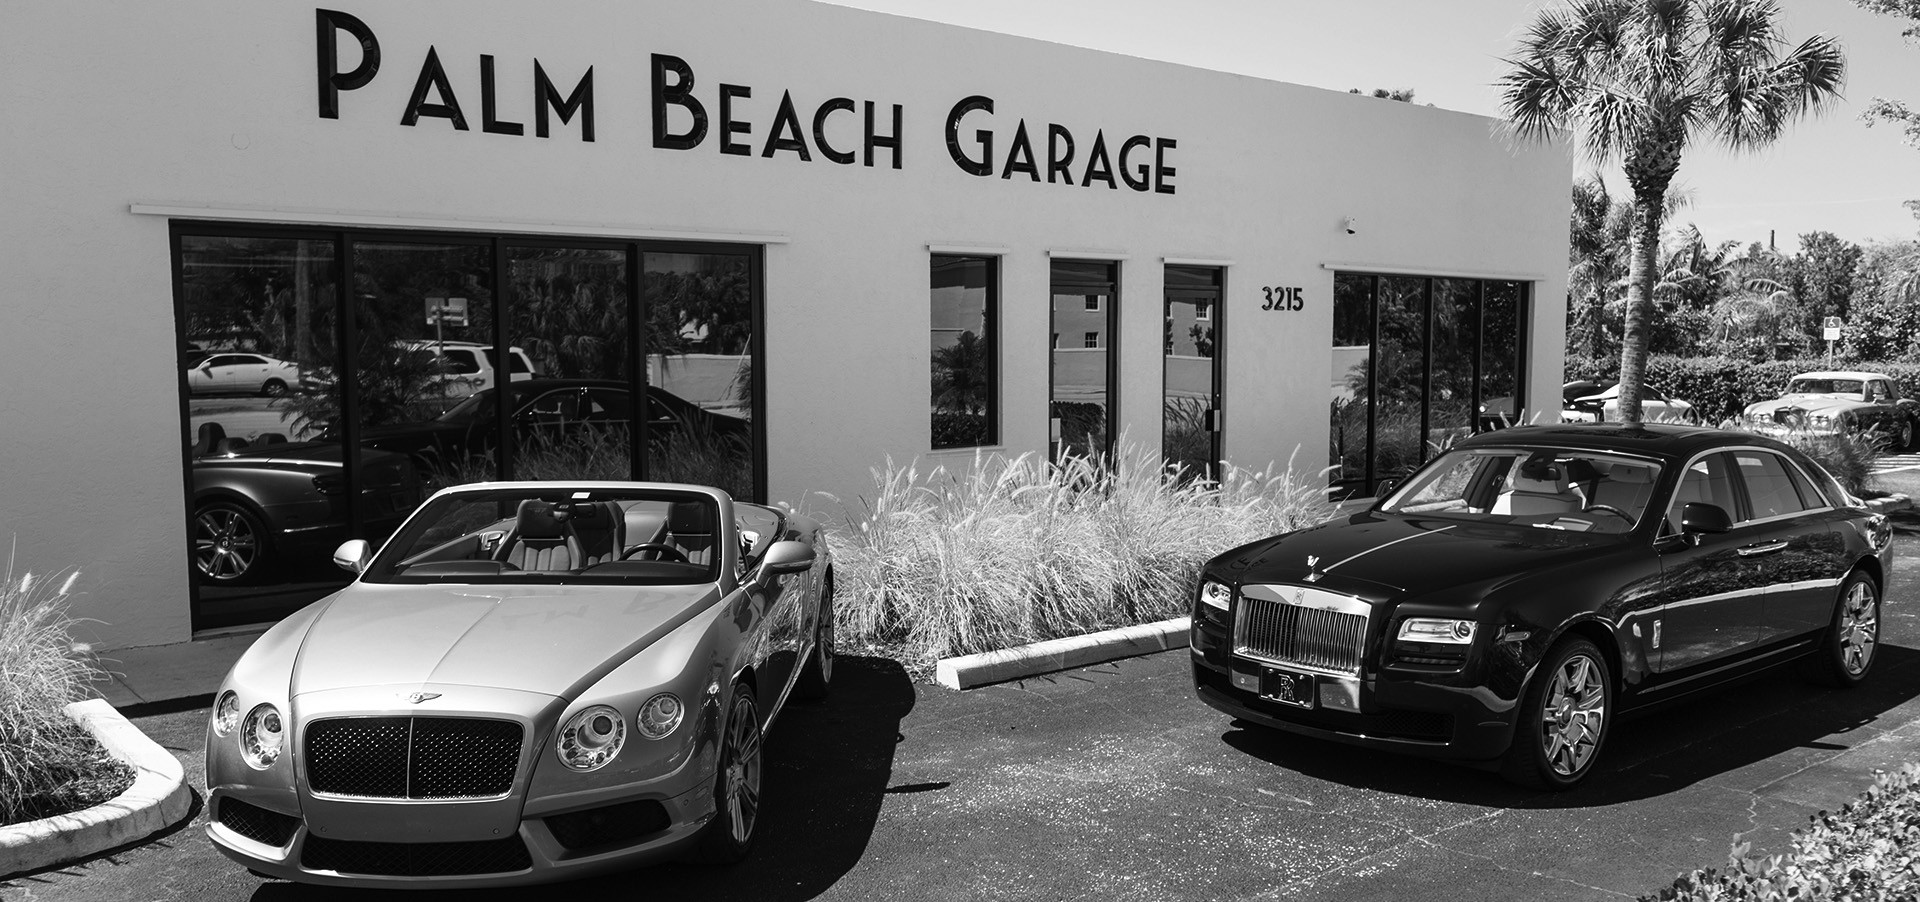 Palm Beach Garage West Palm Beach